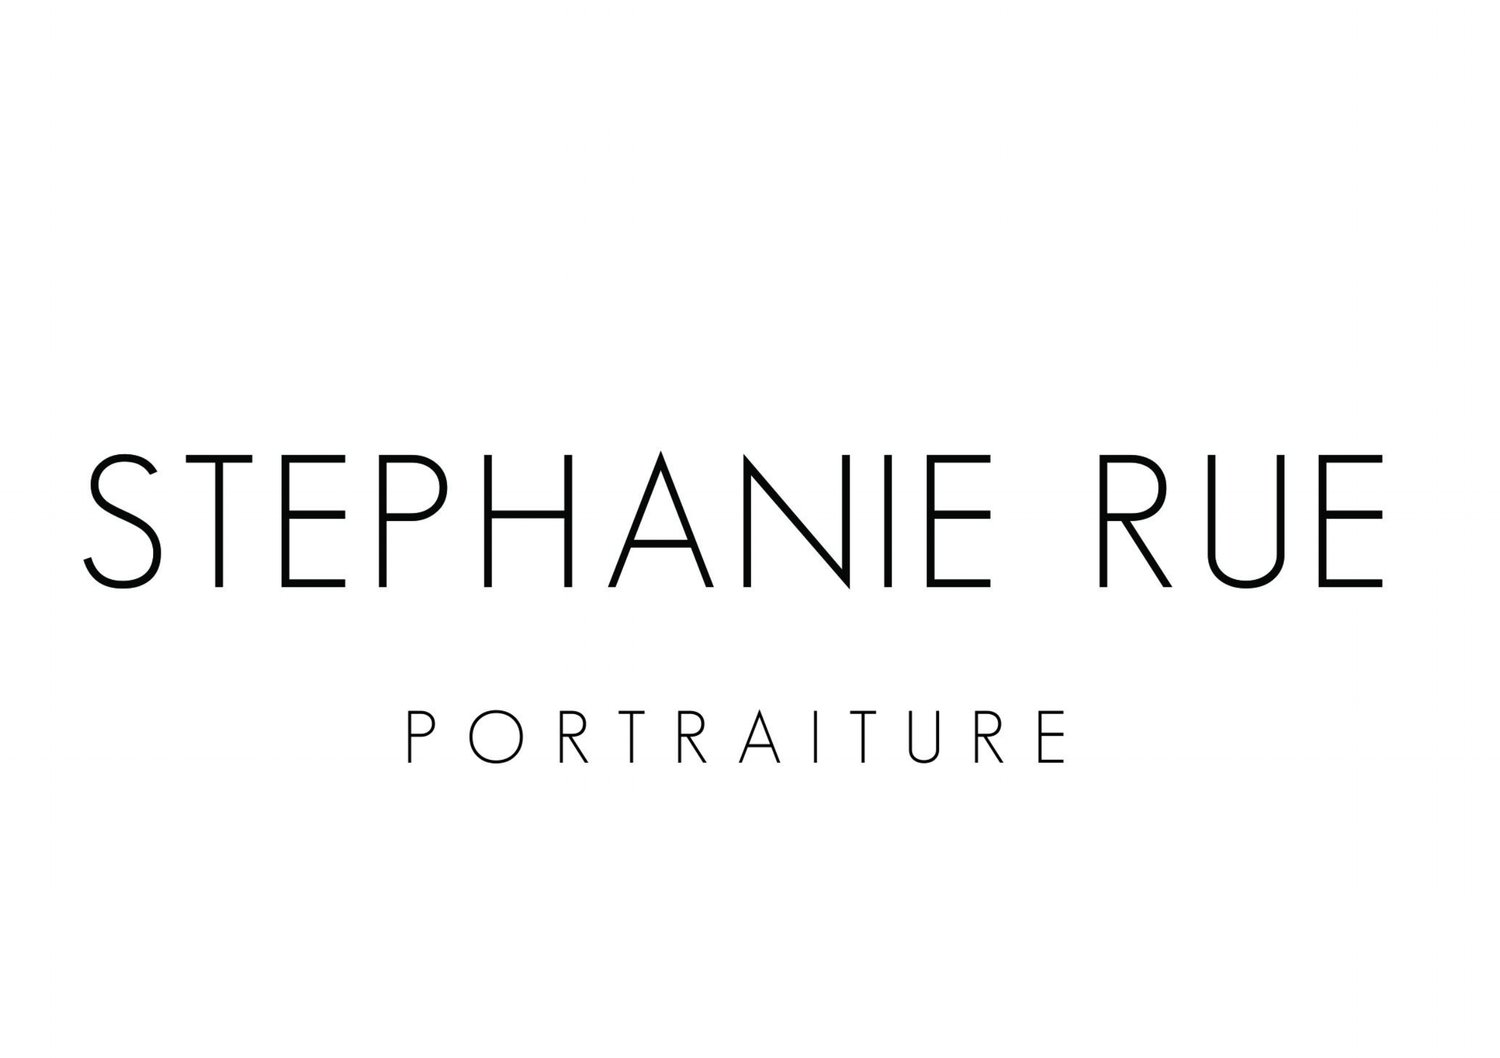 Stephanie Rue Photography